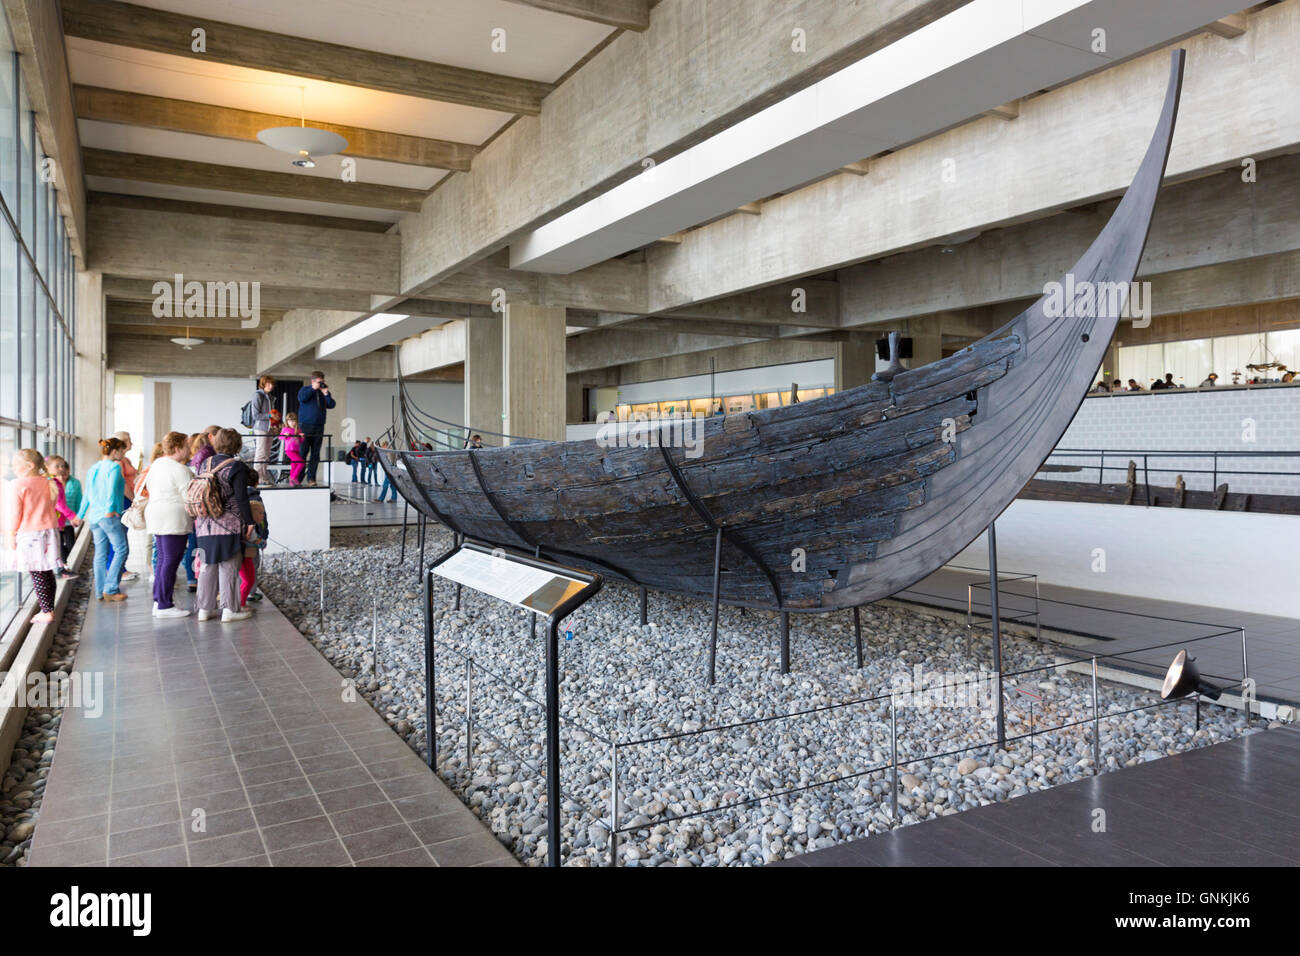 Tourists view Sculdelev original longboat exhibit at Roskilde Viking Ship Museum in Zealand, Denmark - Stock Image